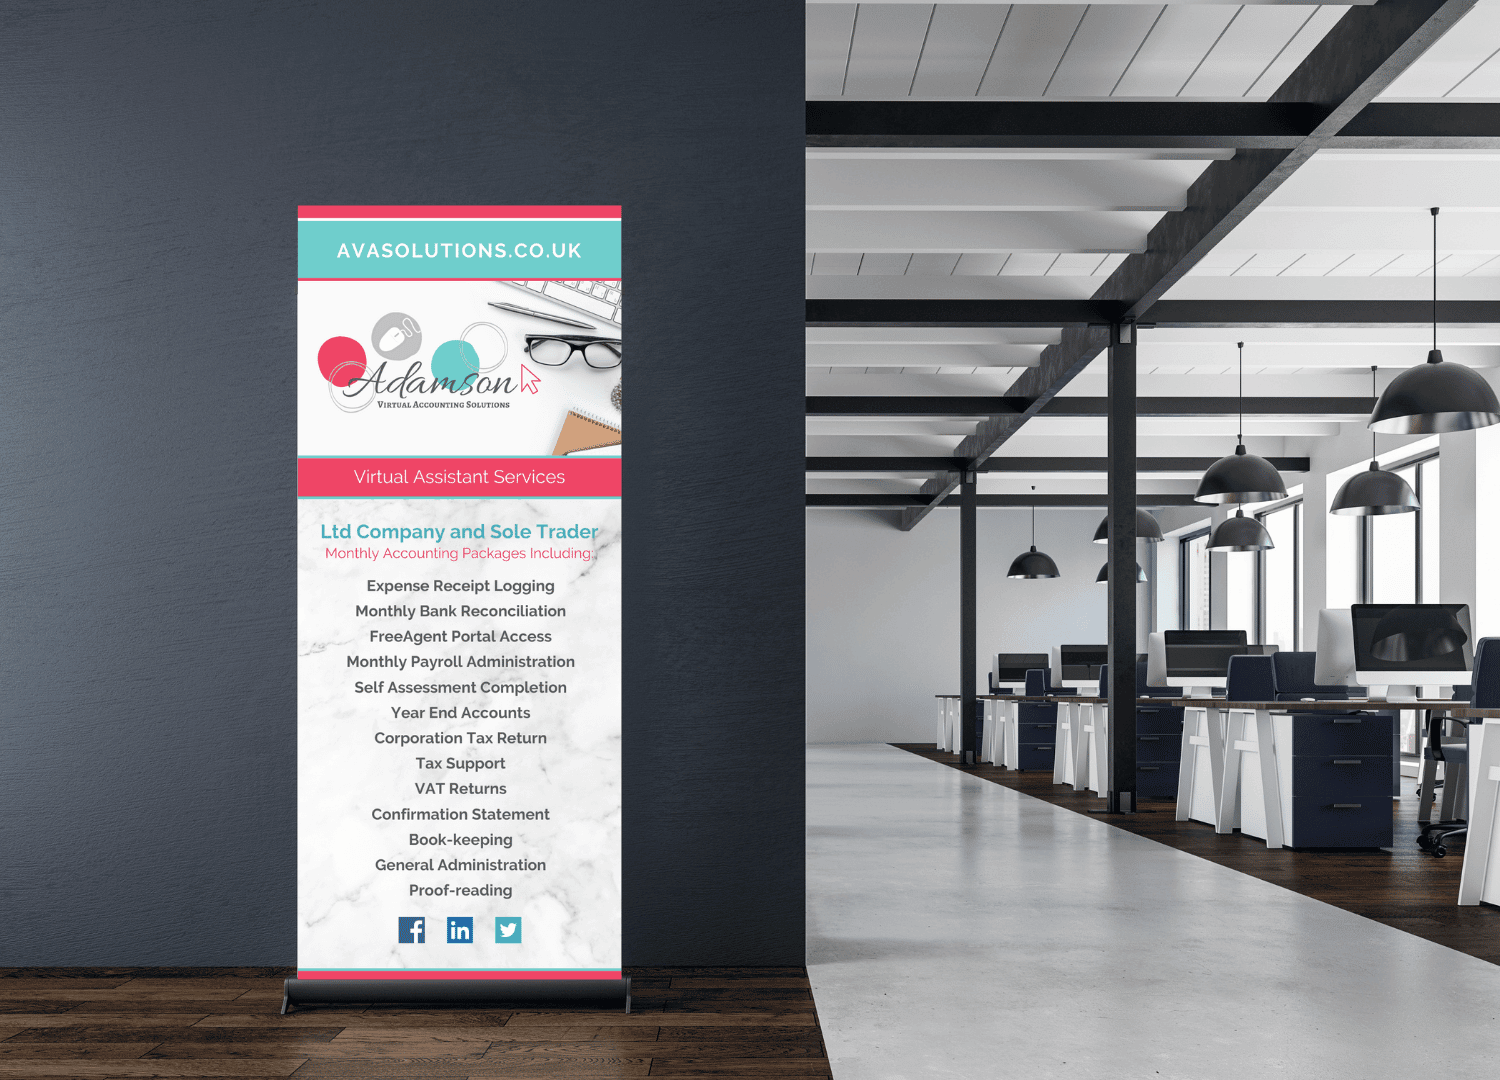 Images shows AVA Solutions roller banner in an office setting